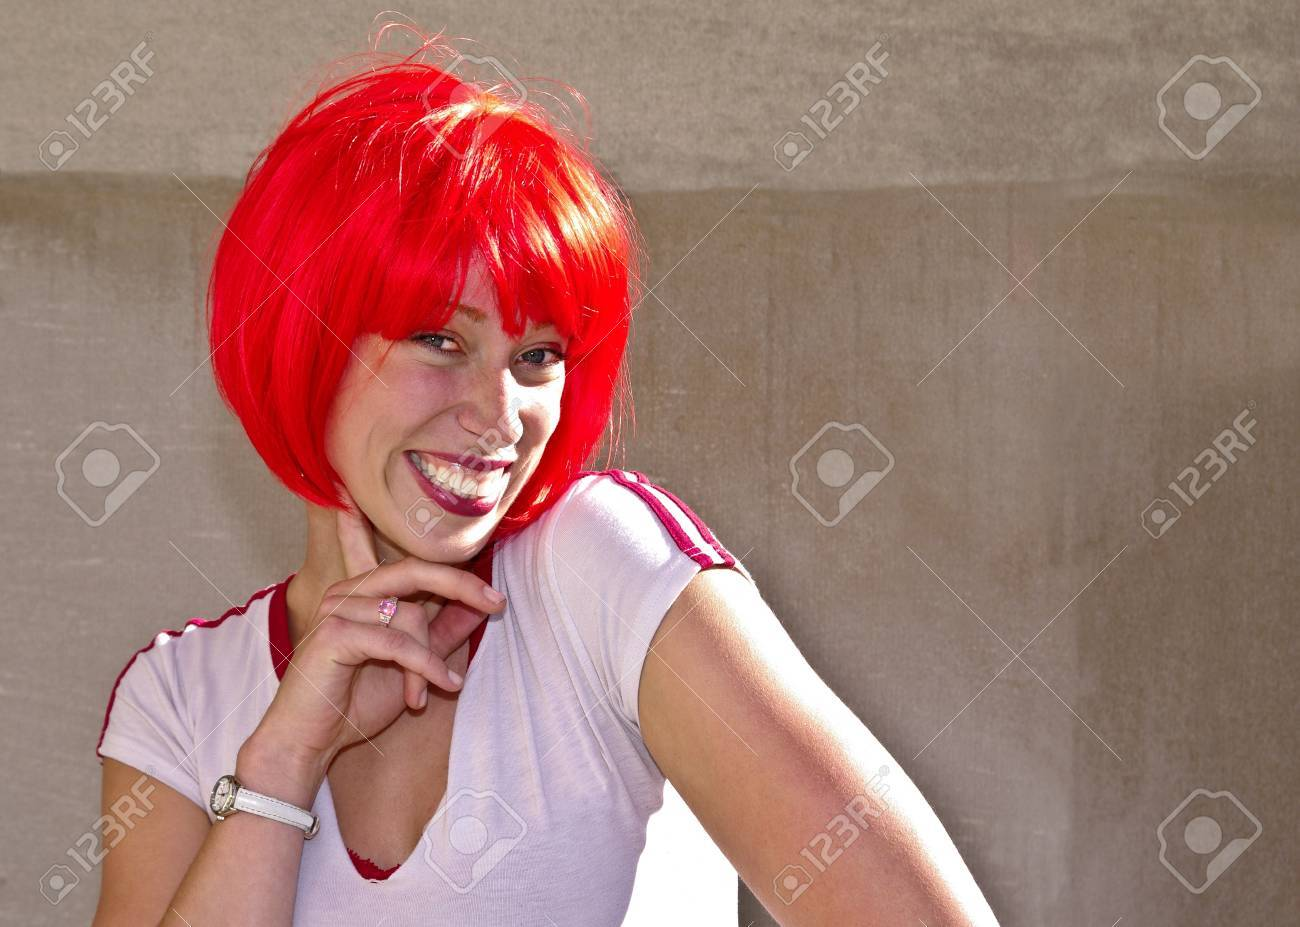 Young woman sporting a red bob for the Canada Day celebrations in Ottawa Stock Photo - 13731474